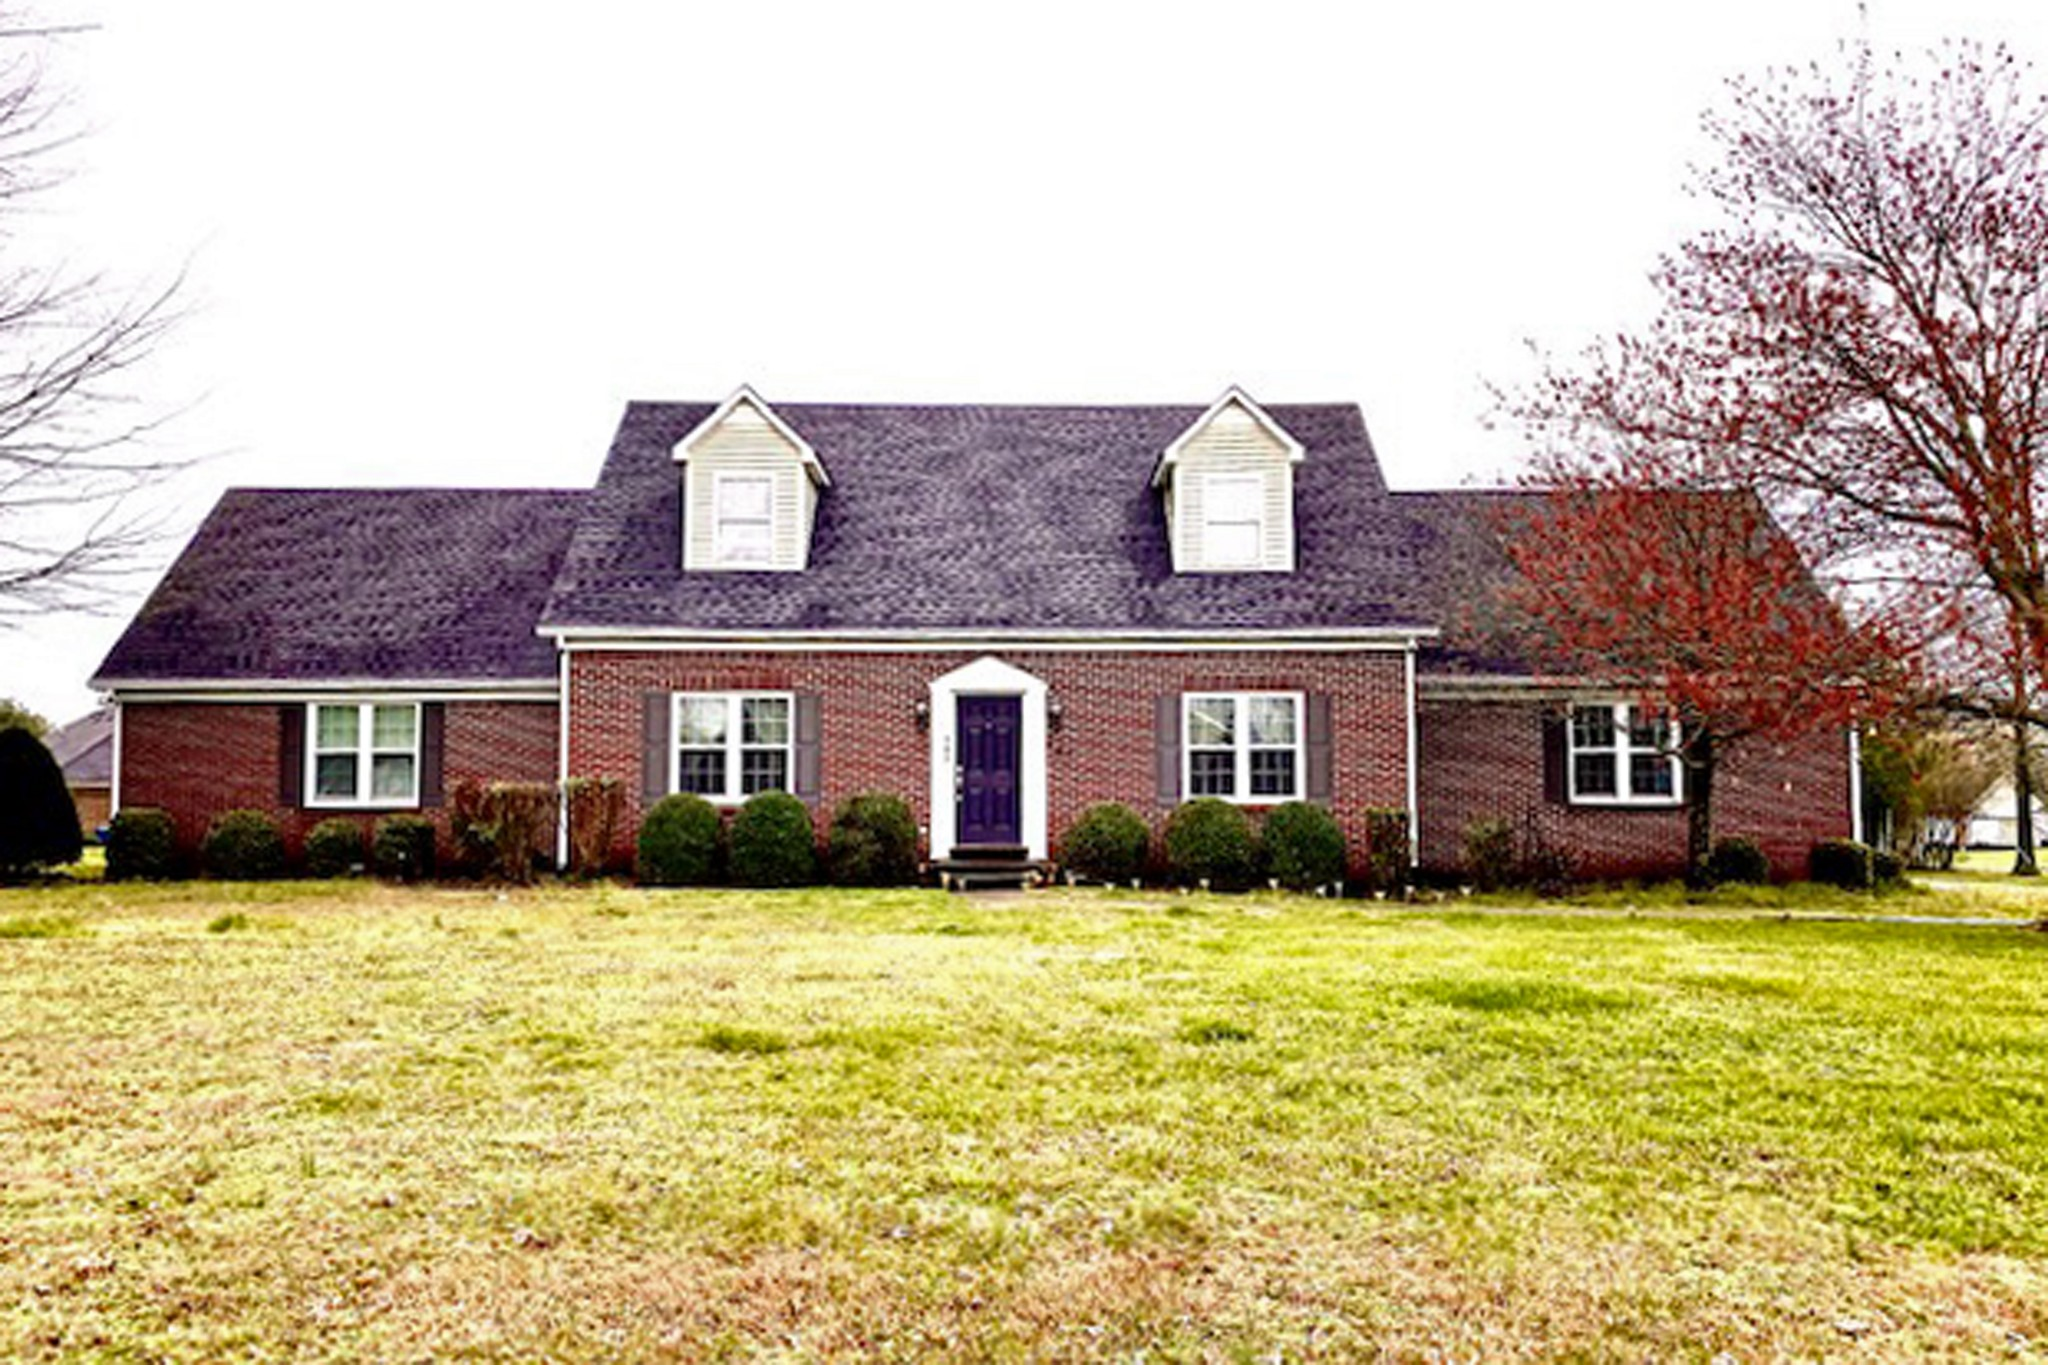 503 Rainbow Dr Property Photo - Franklin, KY real estate listing